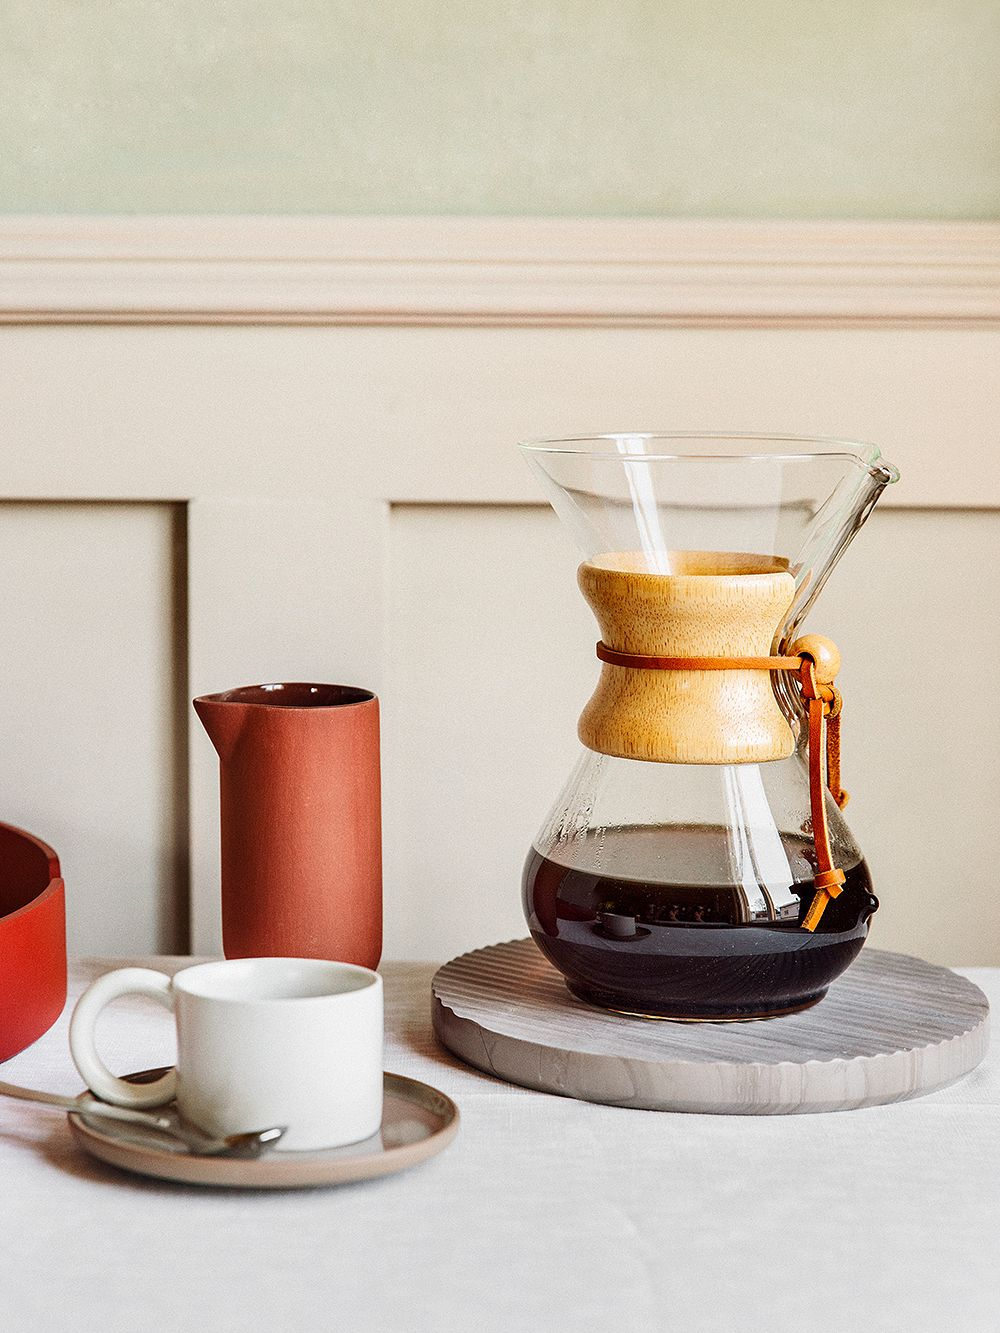 Chemex's Classic coffee maker